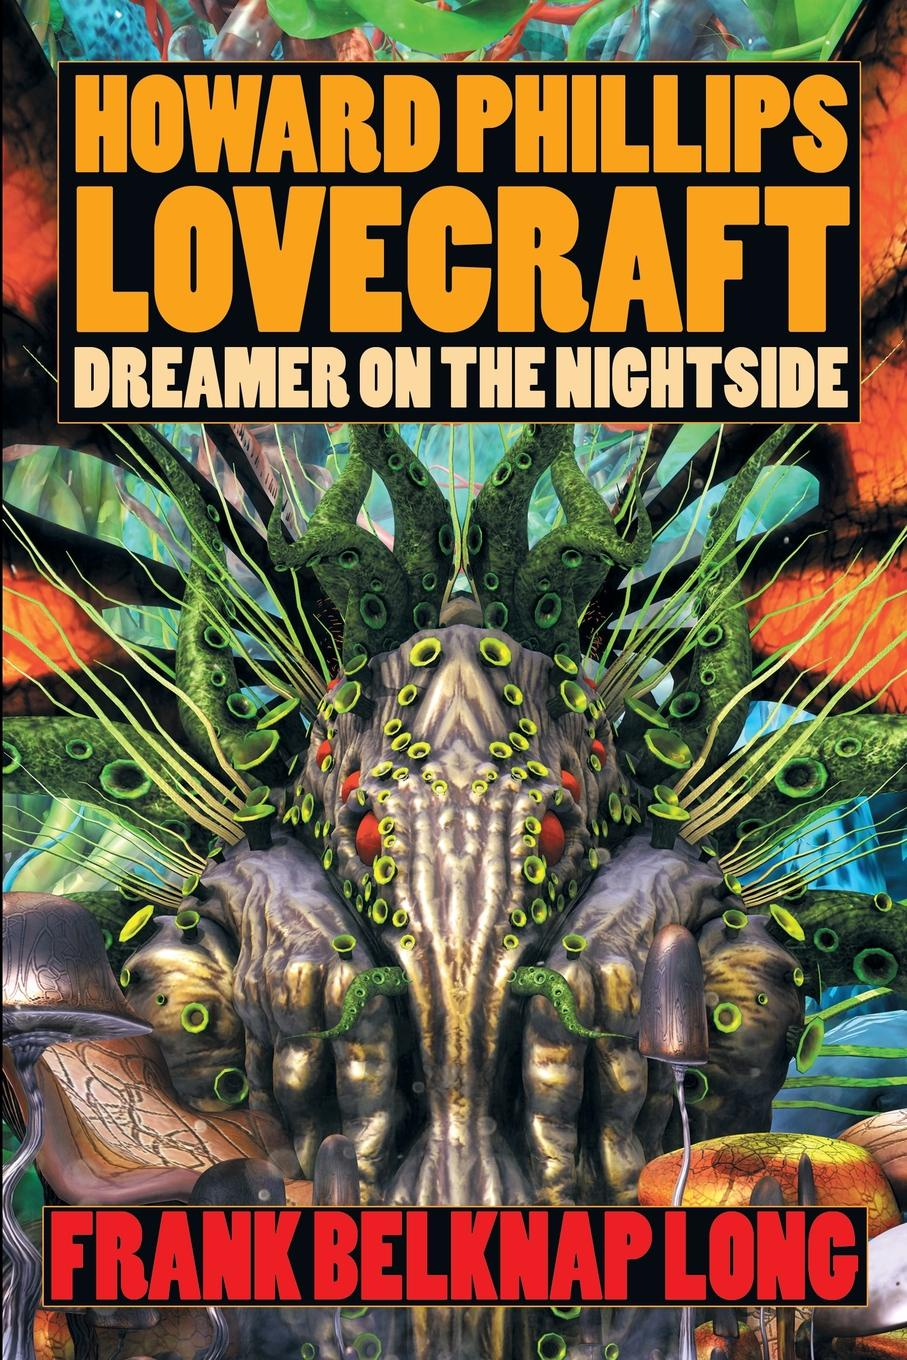 Frank Belknap Long Howard Phillips Lovecraft. Dreamer on the Nightside книга примет и суеверий